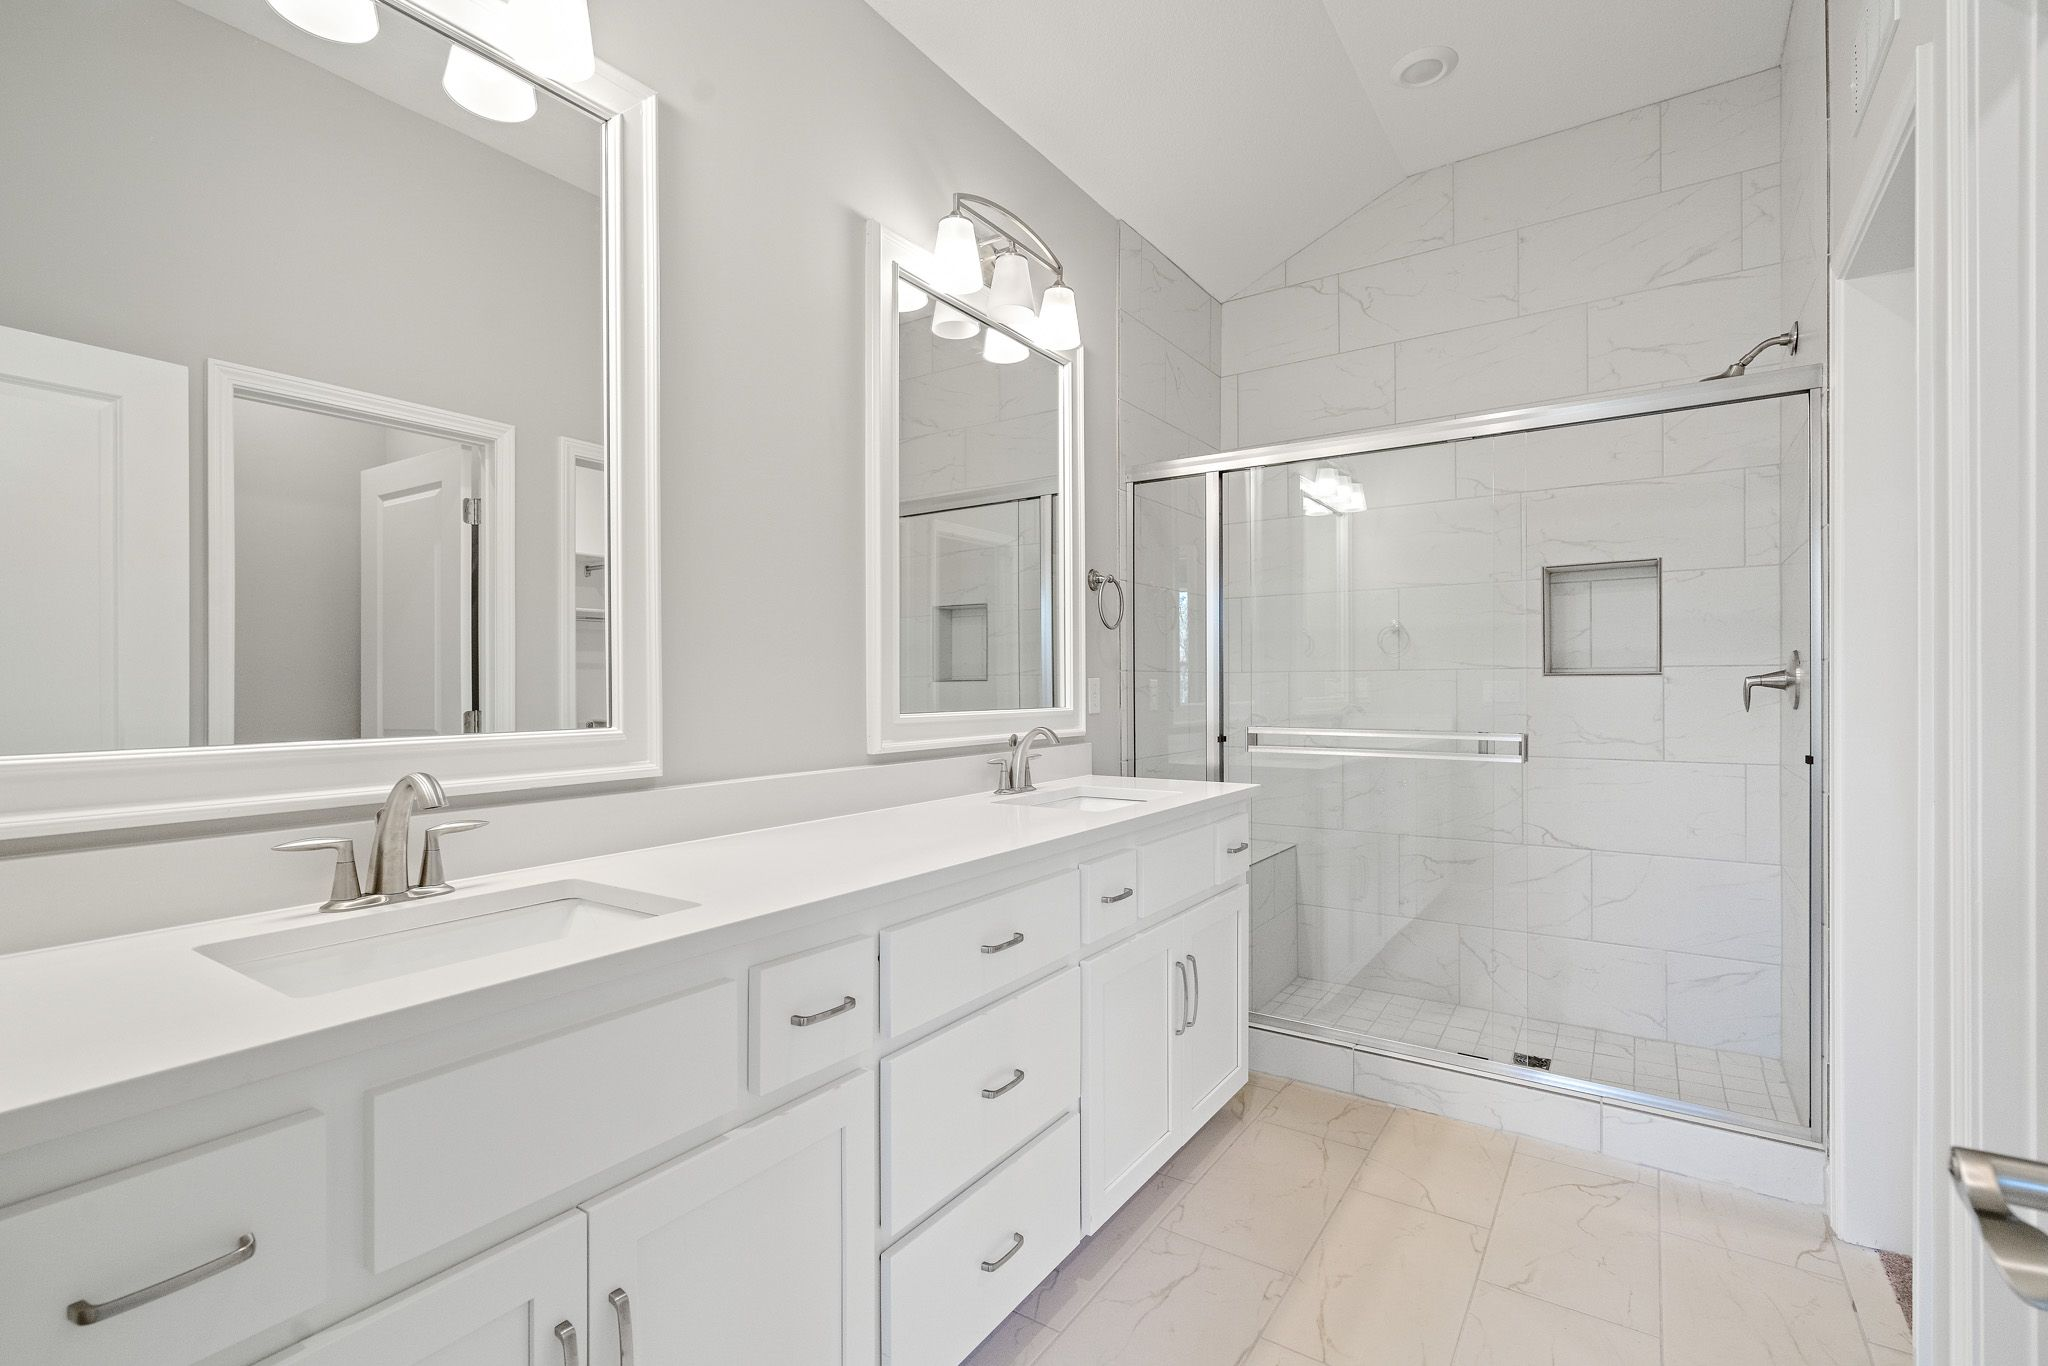 Bathroom featured in the Somerset - Care Free By Summit Homes in Kansas City, MO